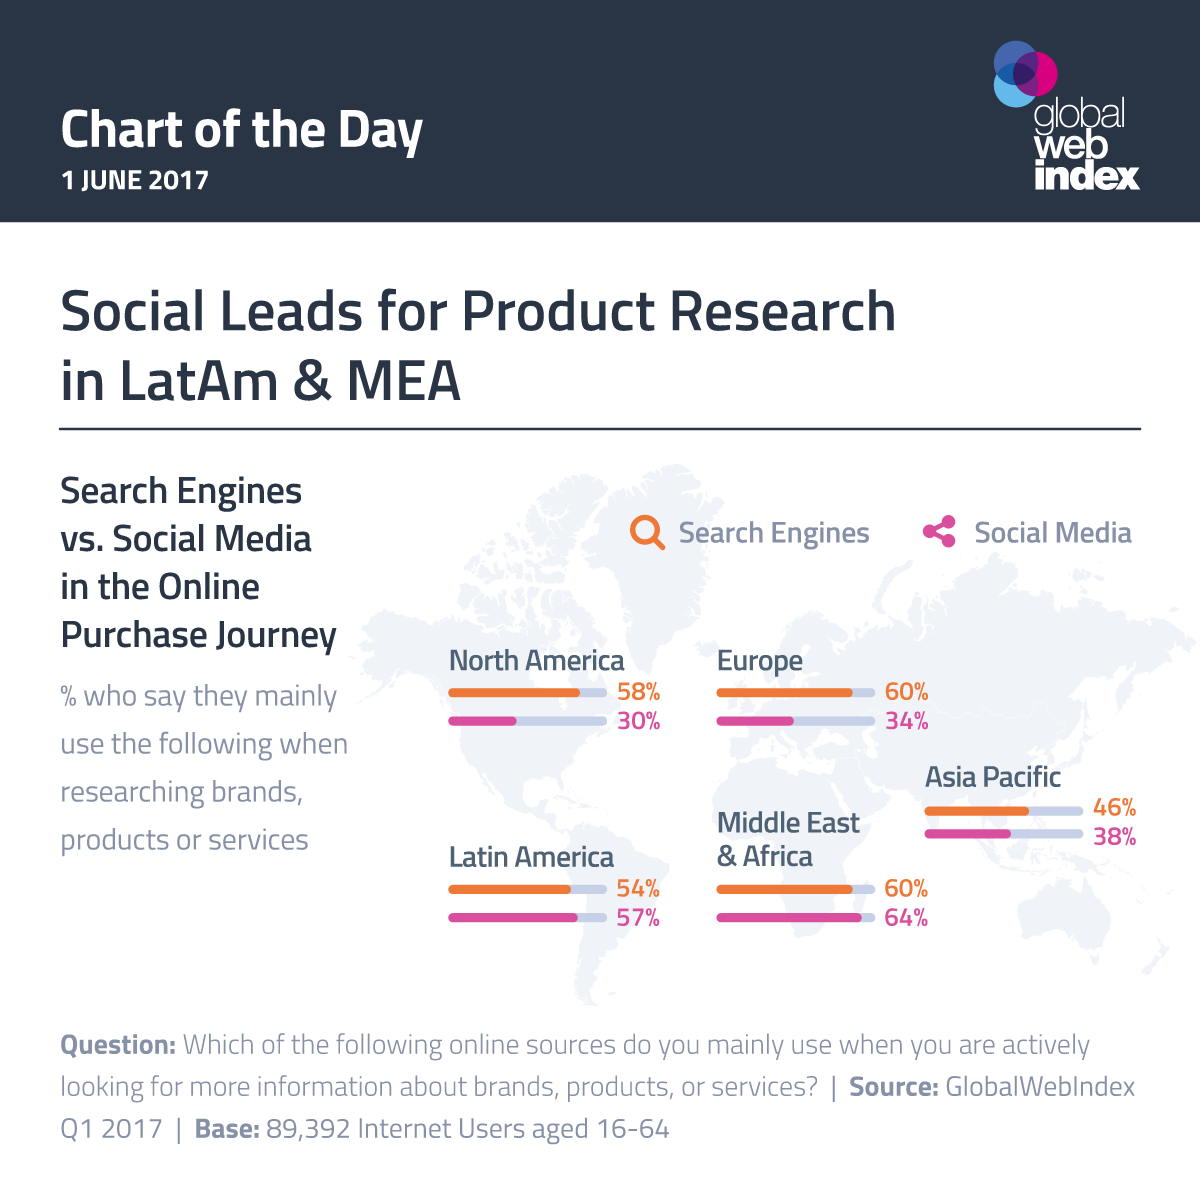 Social Leads for Product Research in LatAm and MEA